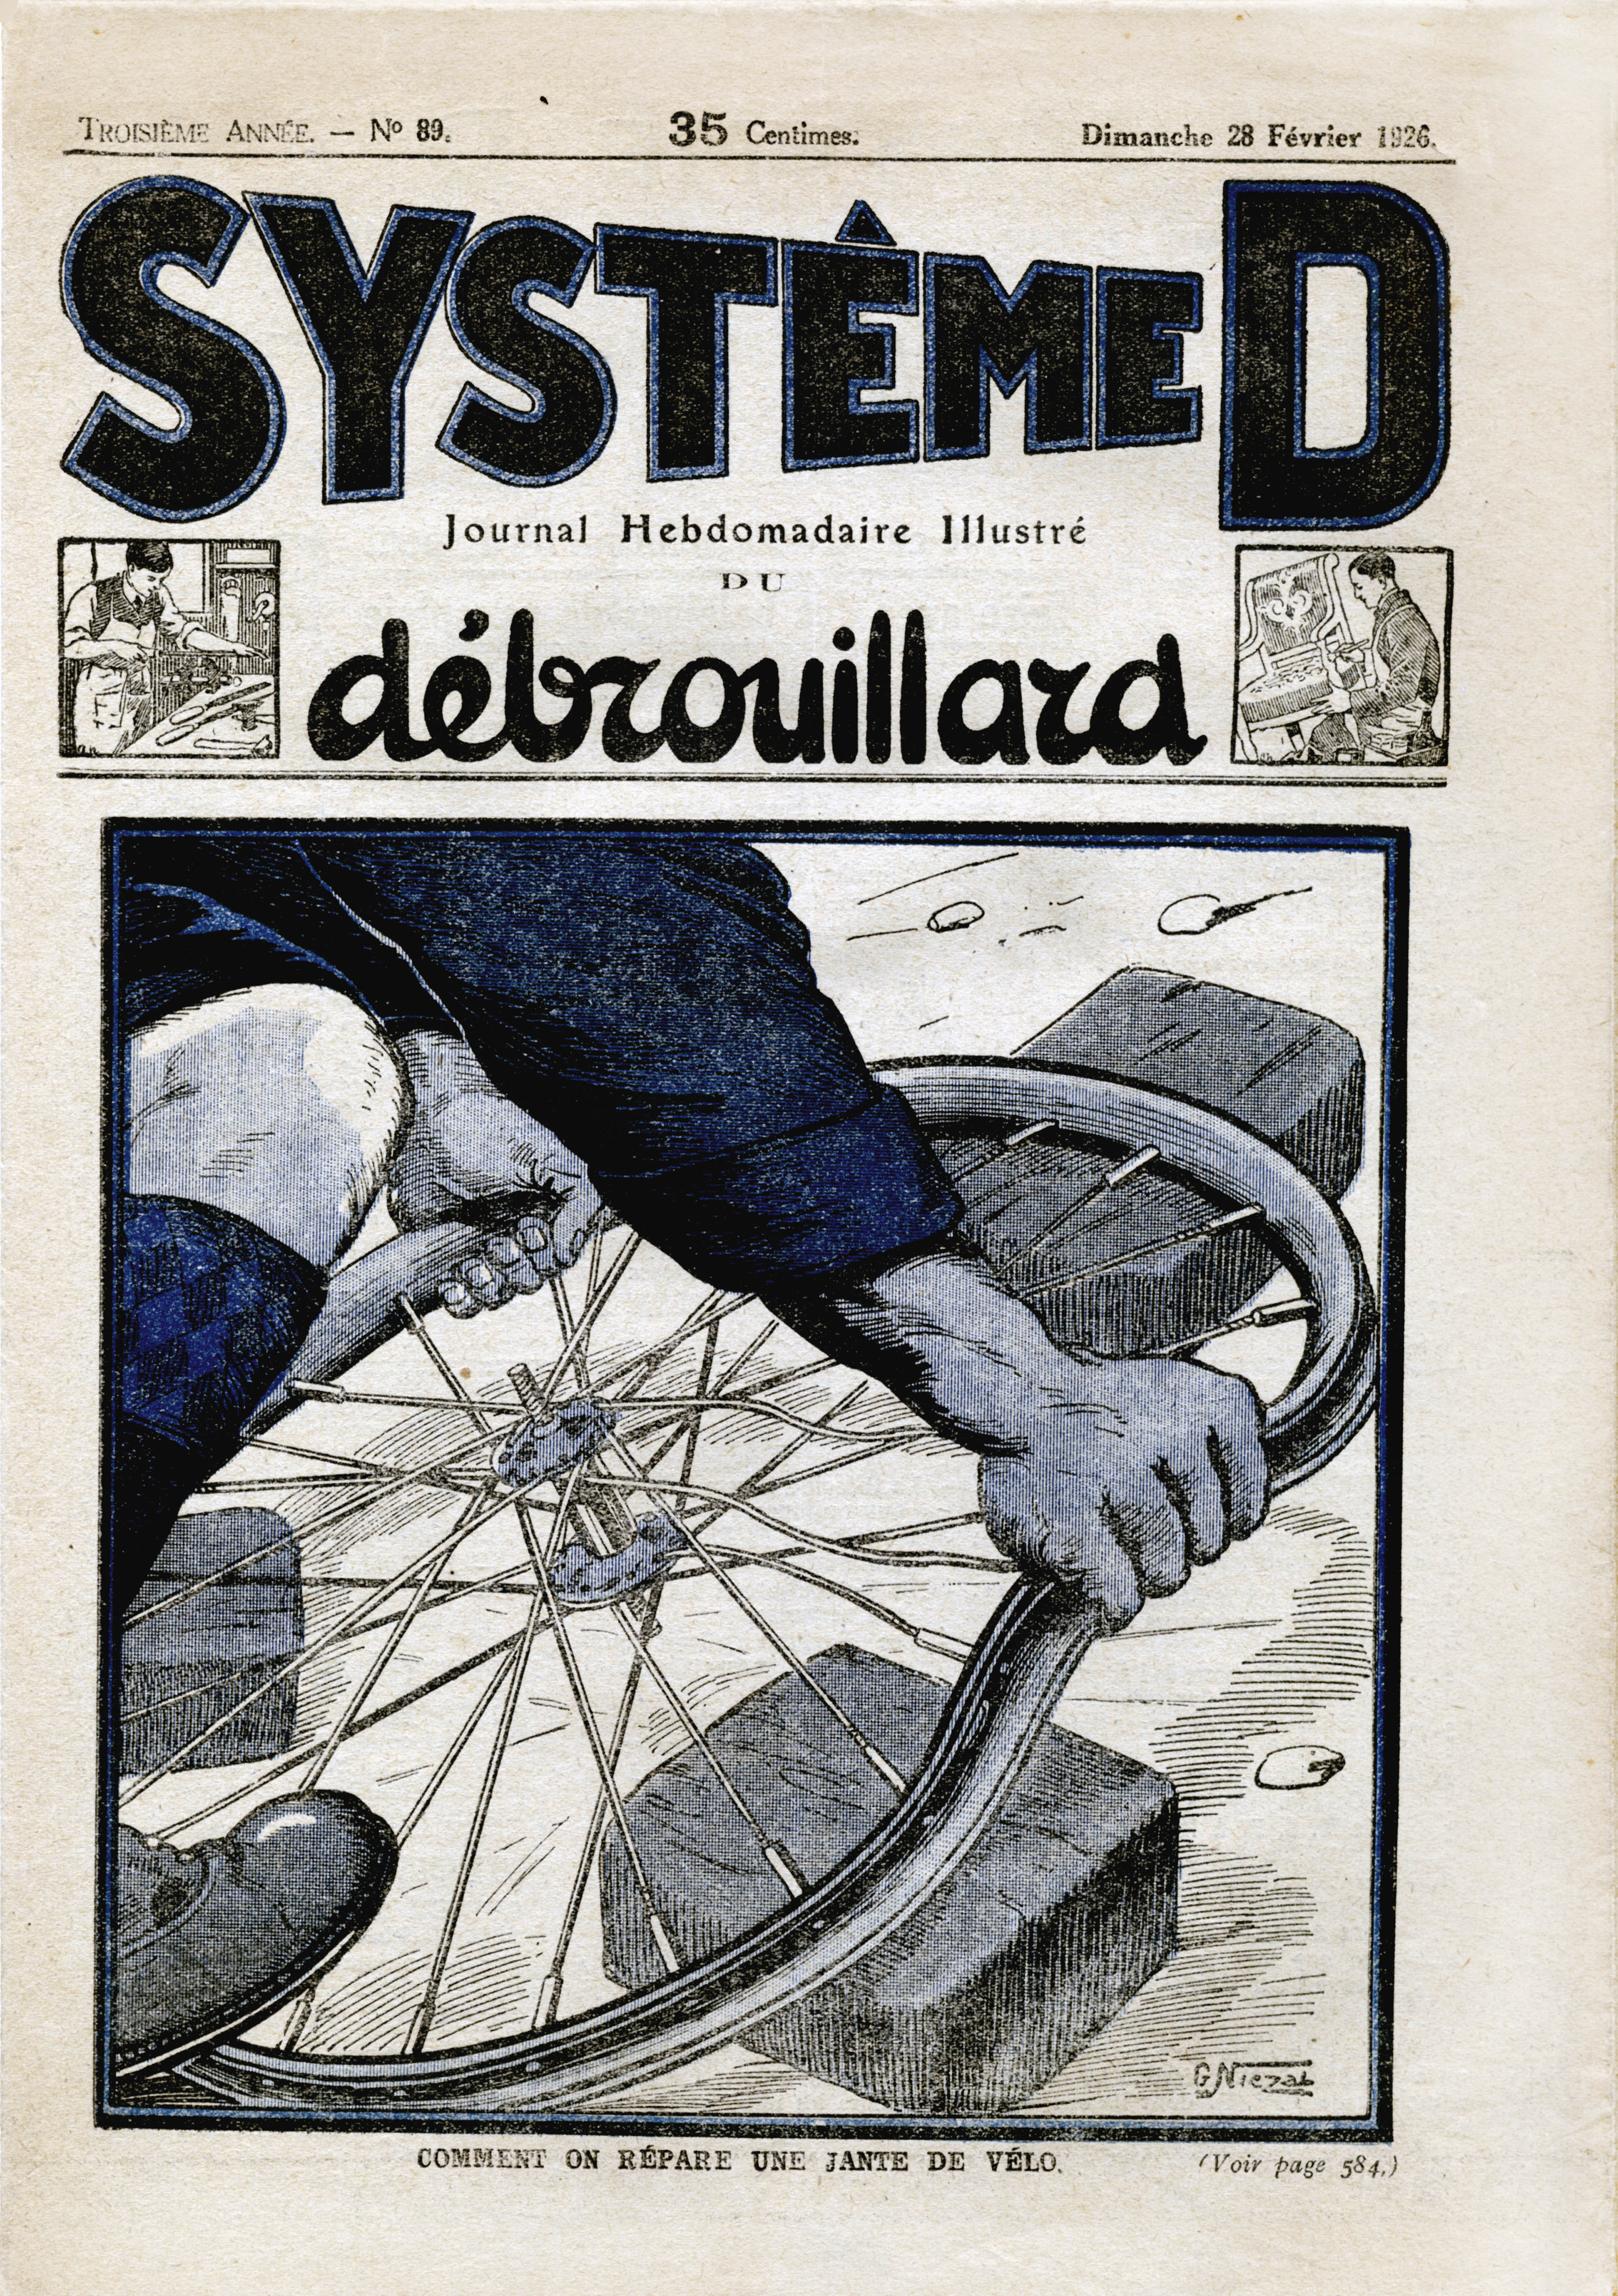 System D Cover from 28 February 1926